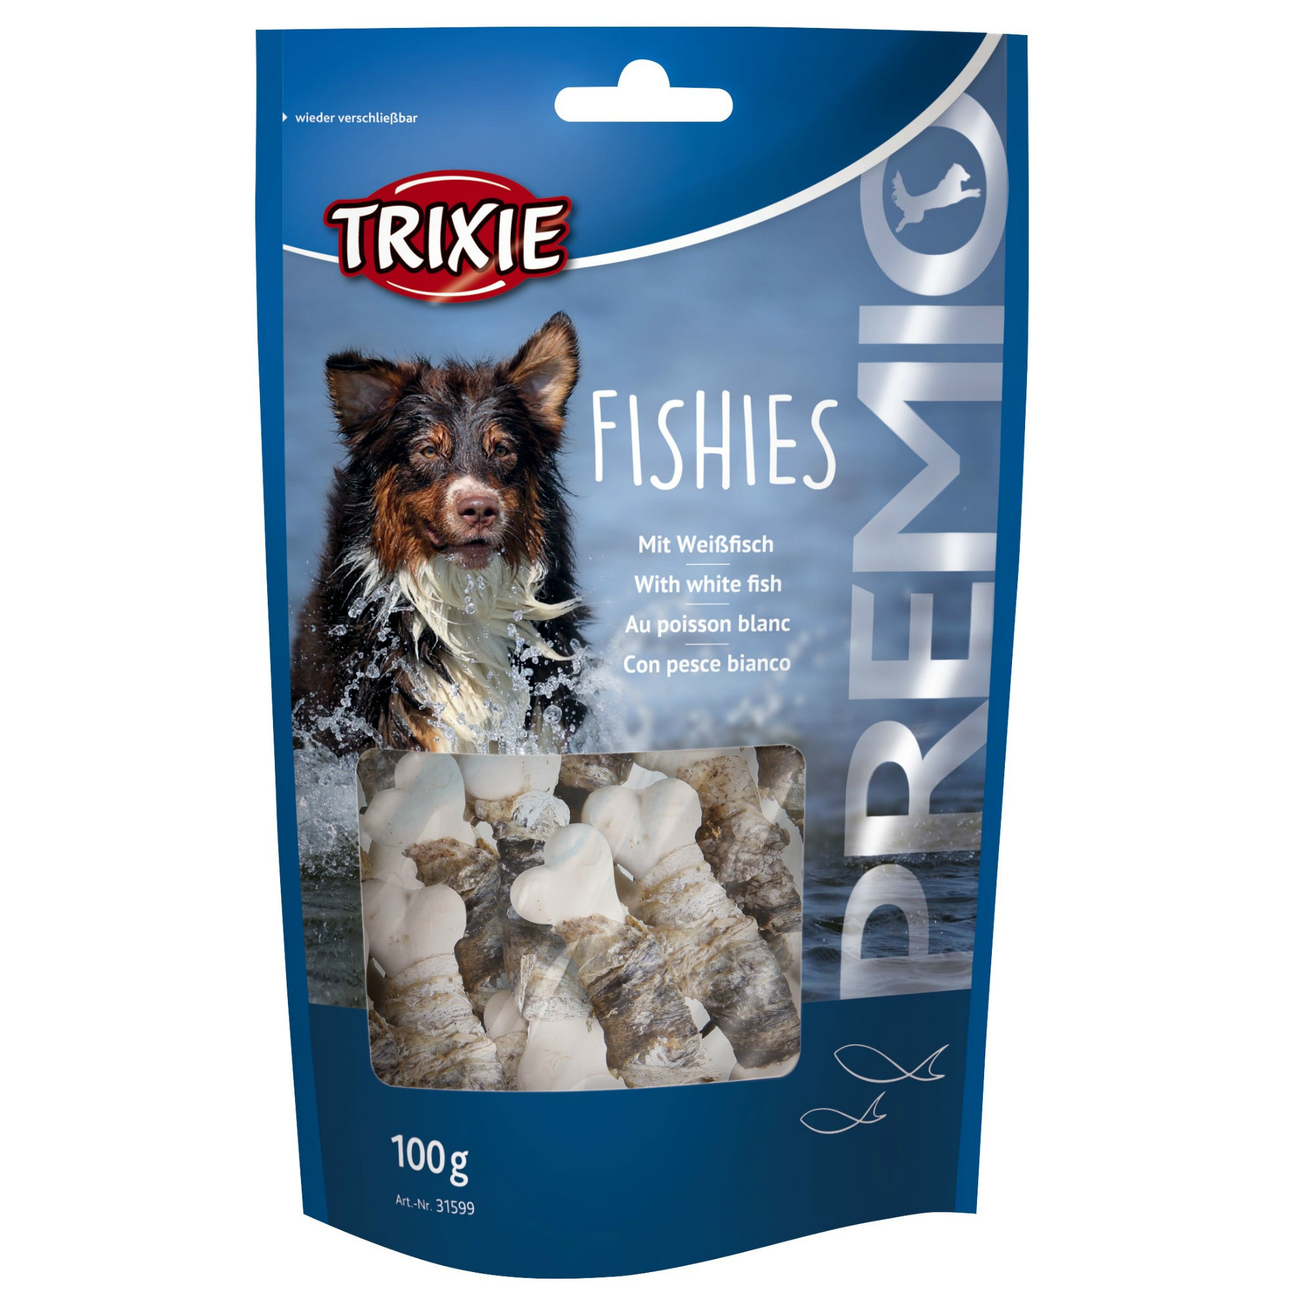 Trixie PREMIO Fishies Hundesnacks 31599